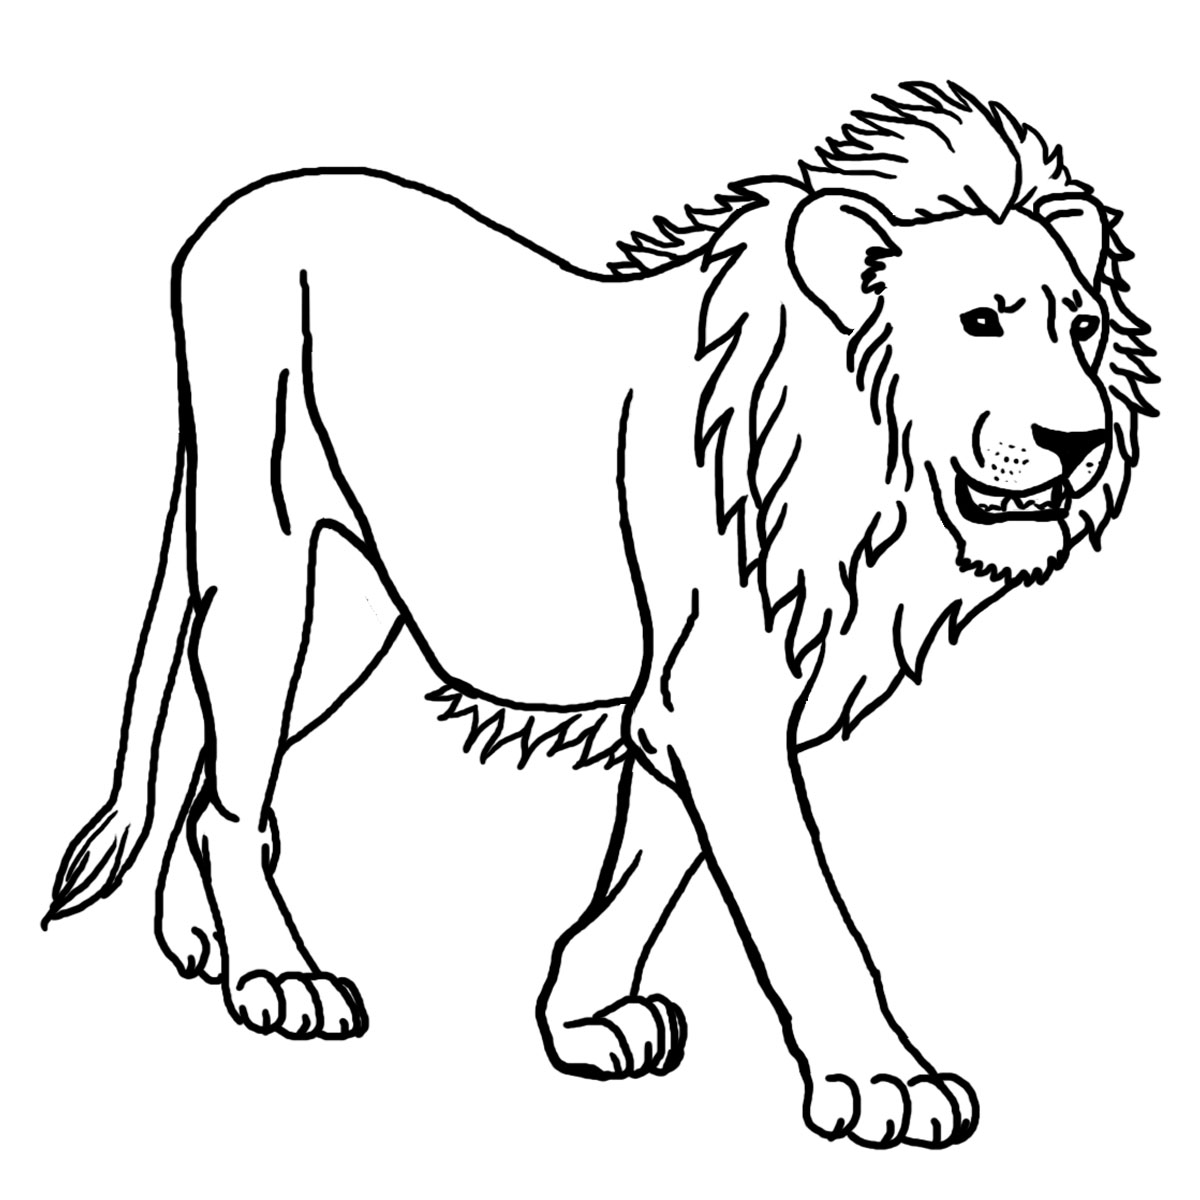 coloring page of a lion fun learn free worksheets for kid ภาพระบายส the lion a page of lion coloring